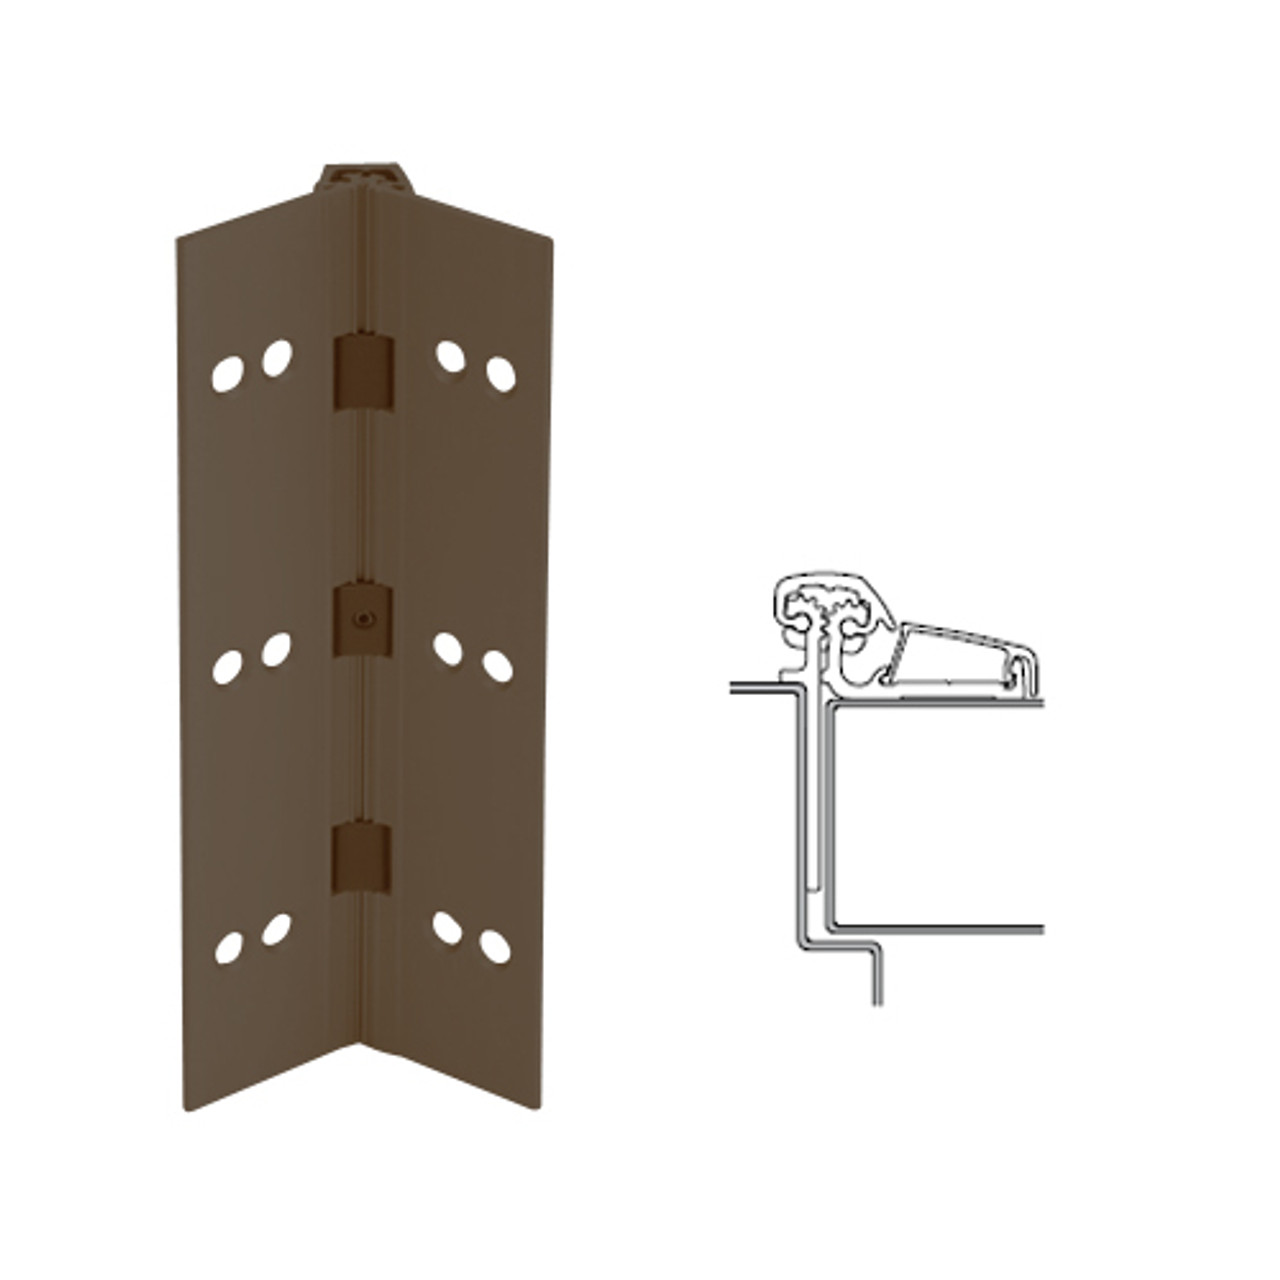 053XY-313AN-95-TF IVES Adjustable Half Surface Continuous Geared Hinges with Thread Forming Screws in Dark Bronze Anodized